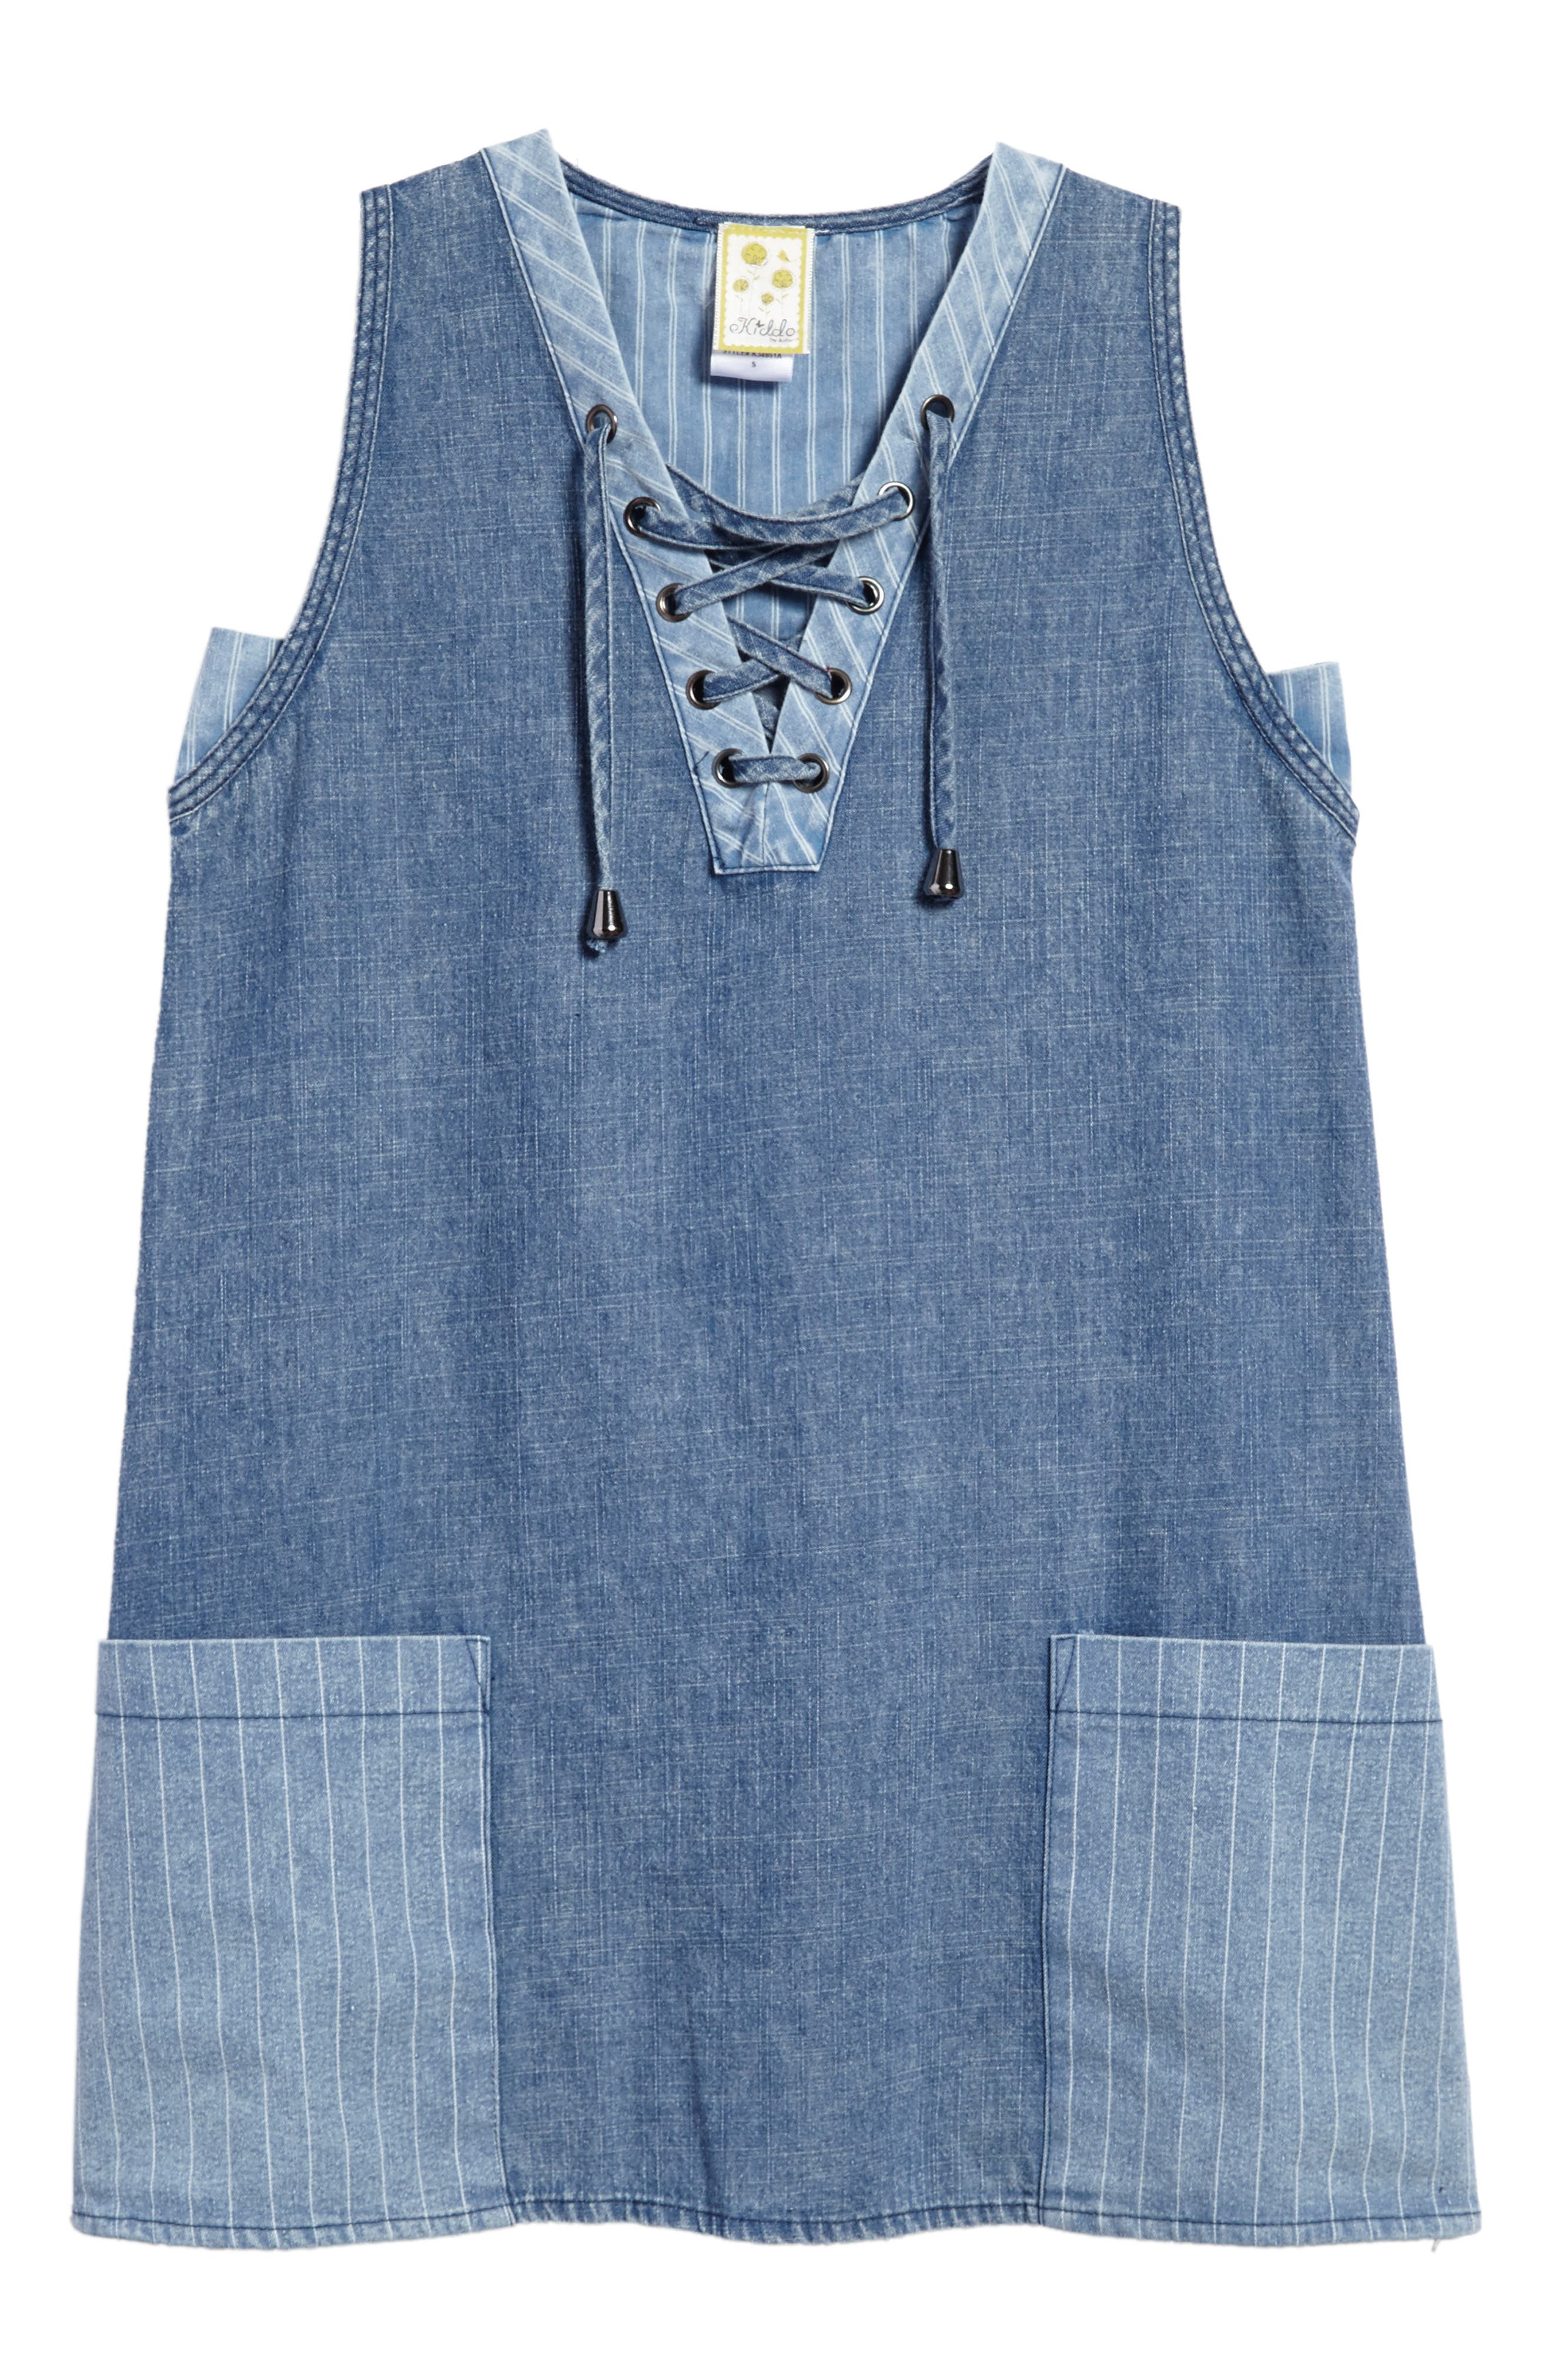 Alternate Image 1 Selected - Kiddo Denim Shift Dress (Big Girls)